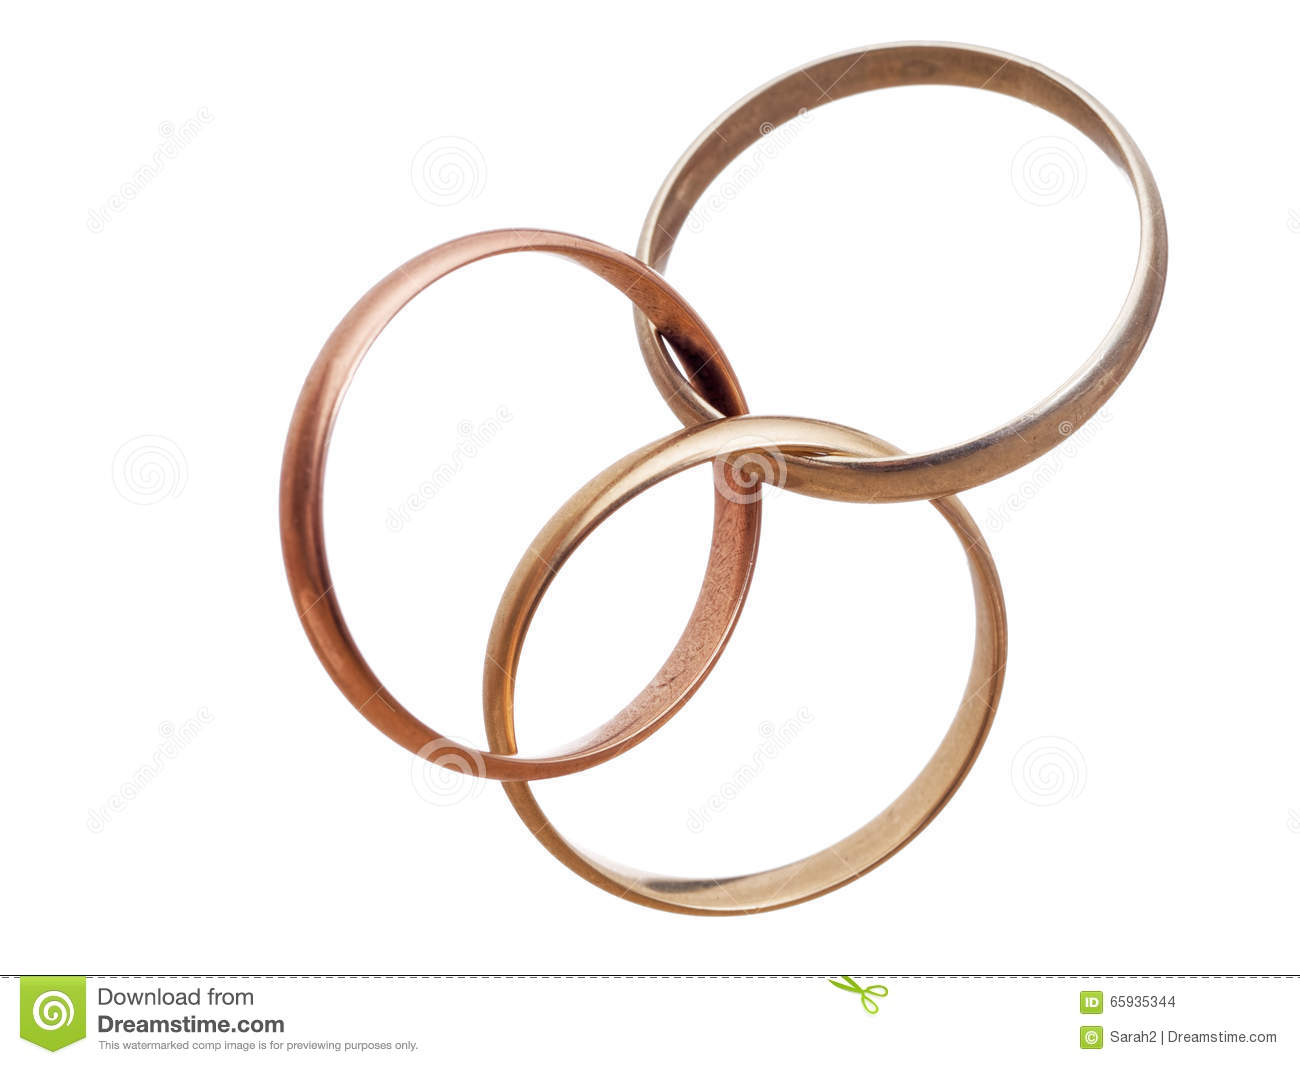 three interlocking wedding rings modern marriage bigamy stock images - Interlocking Wedding Rings